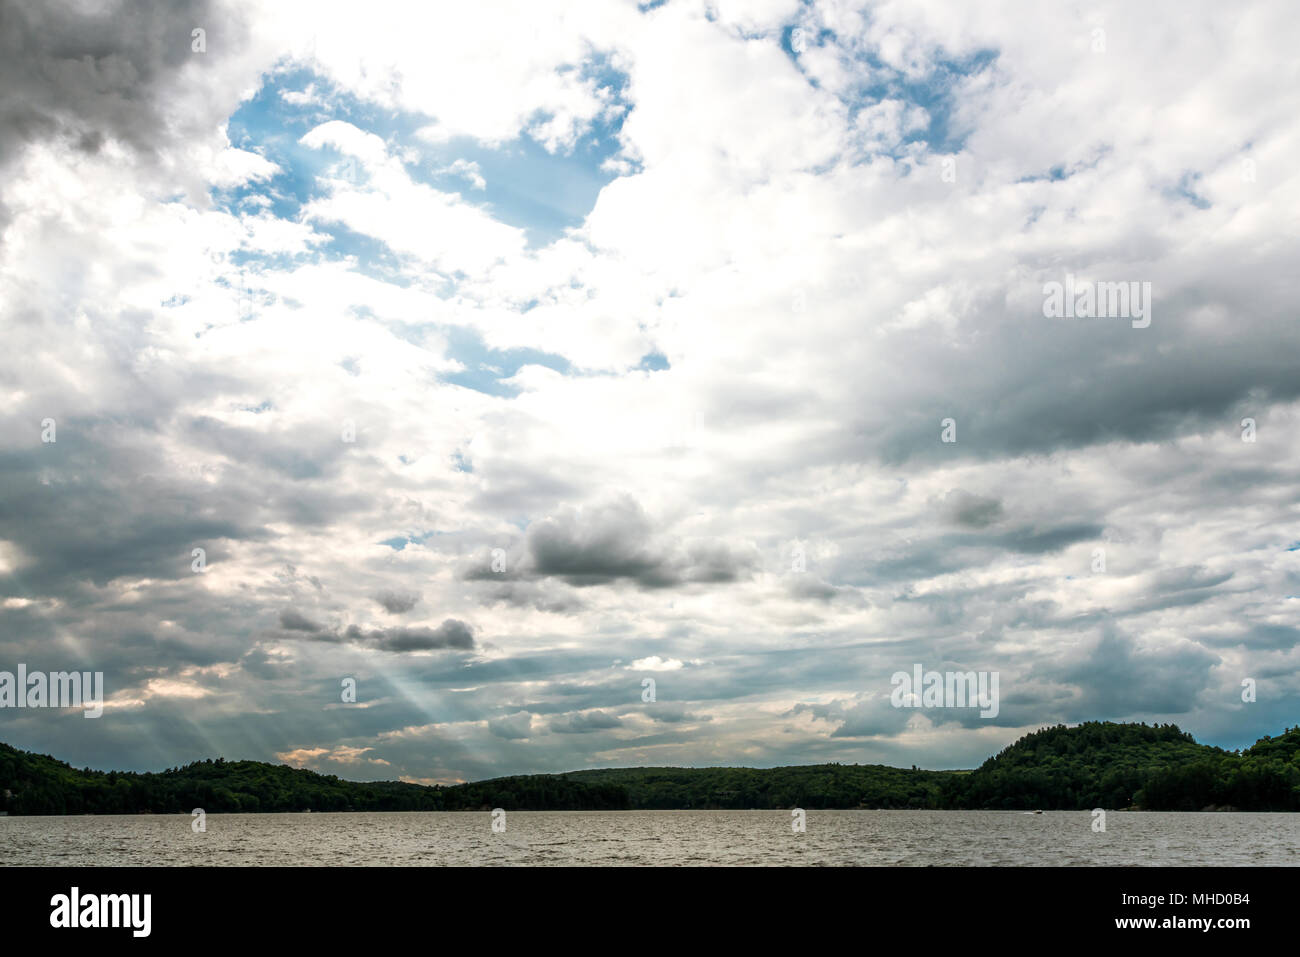 Clouds moving across a forested lake with the early evening sun rays breaking through Stock Photo